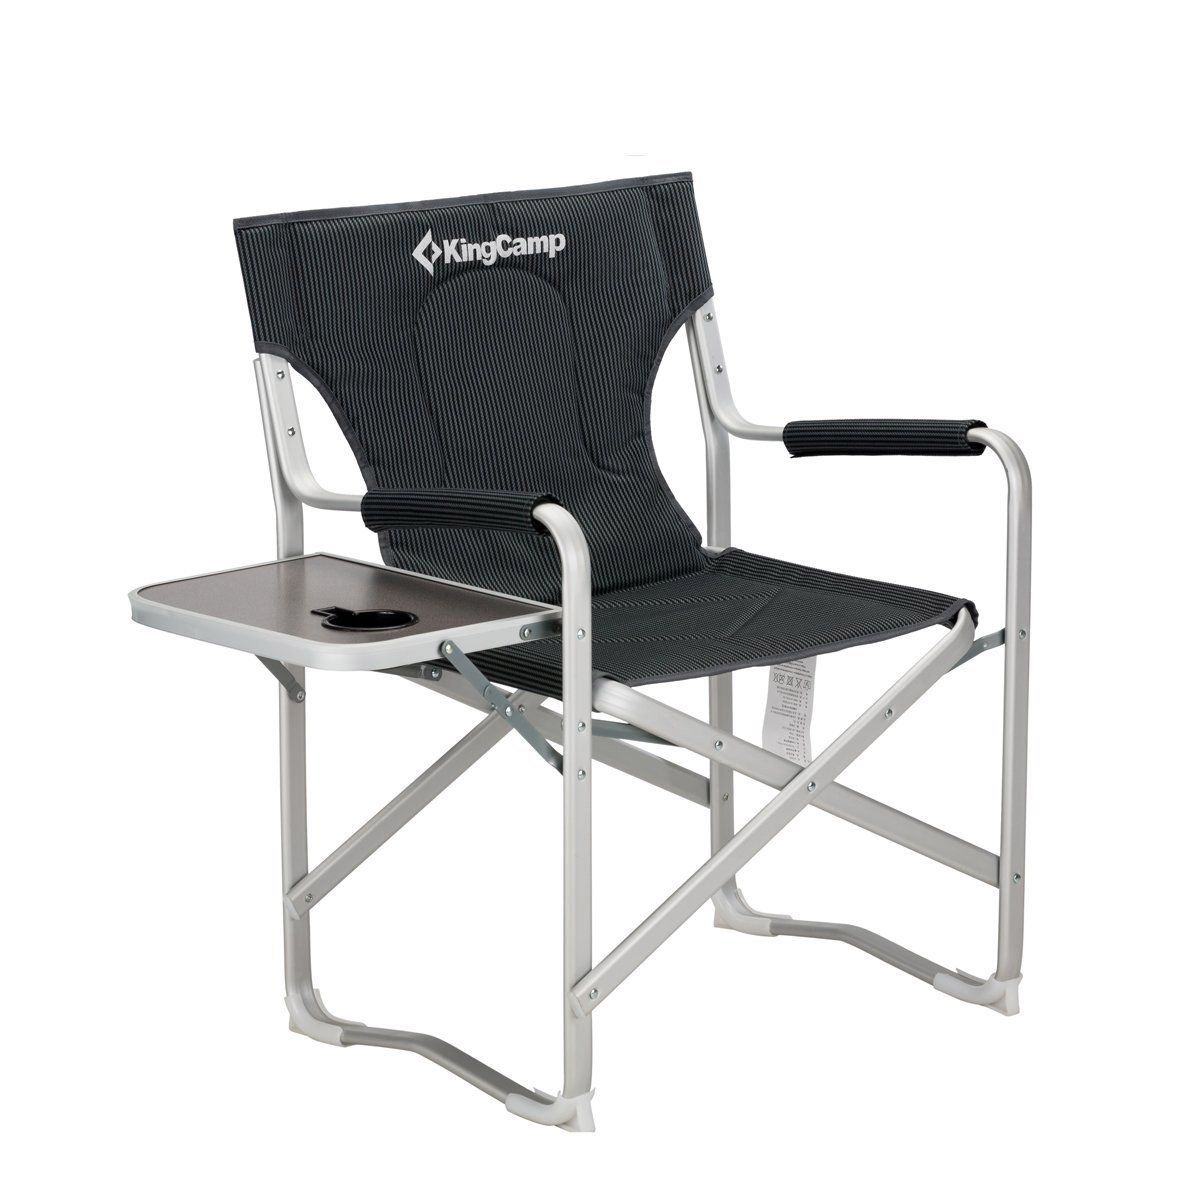 Kingcamp Director Chair Folding Aluminum Padding Portable Heavy Duty Comfort Sturdy Reclining With Ar Outdoor Folding Chairs Best Folding Chairs Camping Chairs